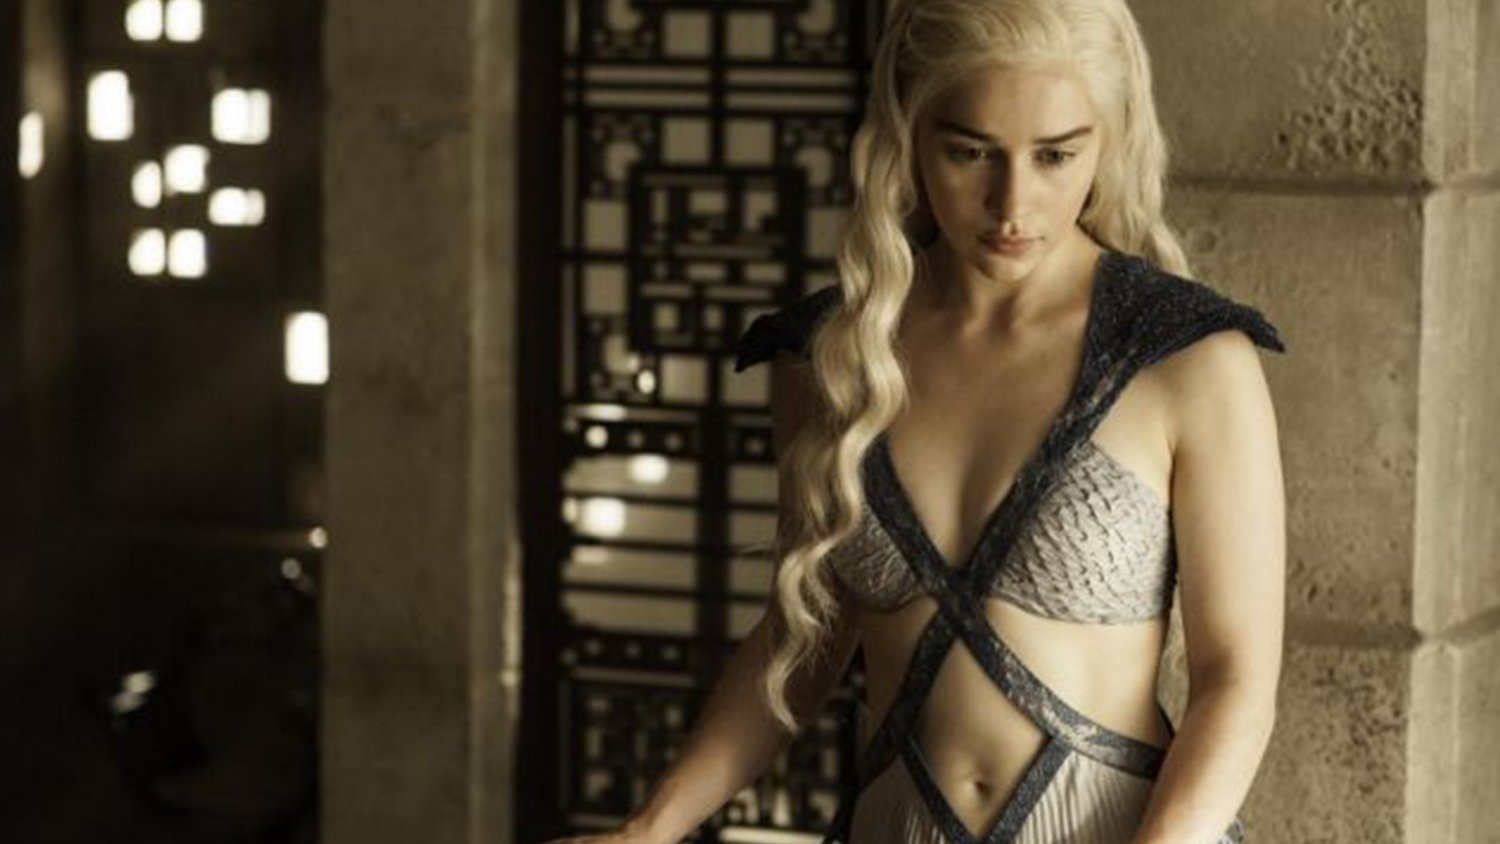 GAME OF THRONES' Eighth and Final Season Confirmed to Only Have 6 Episodes